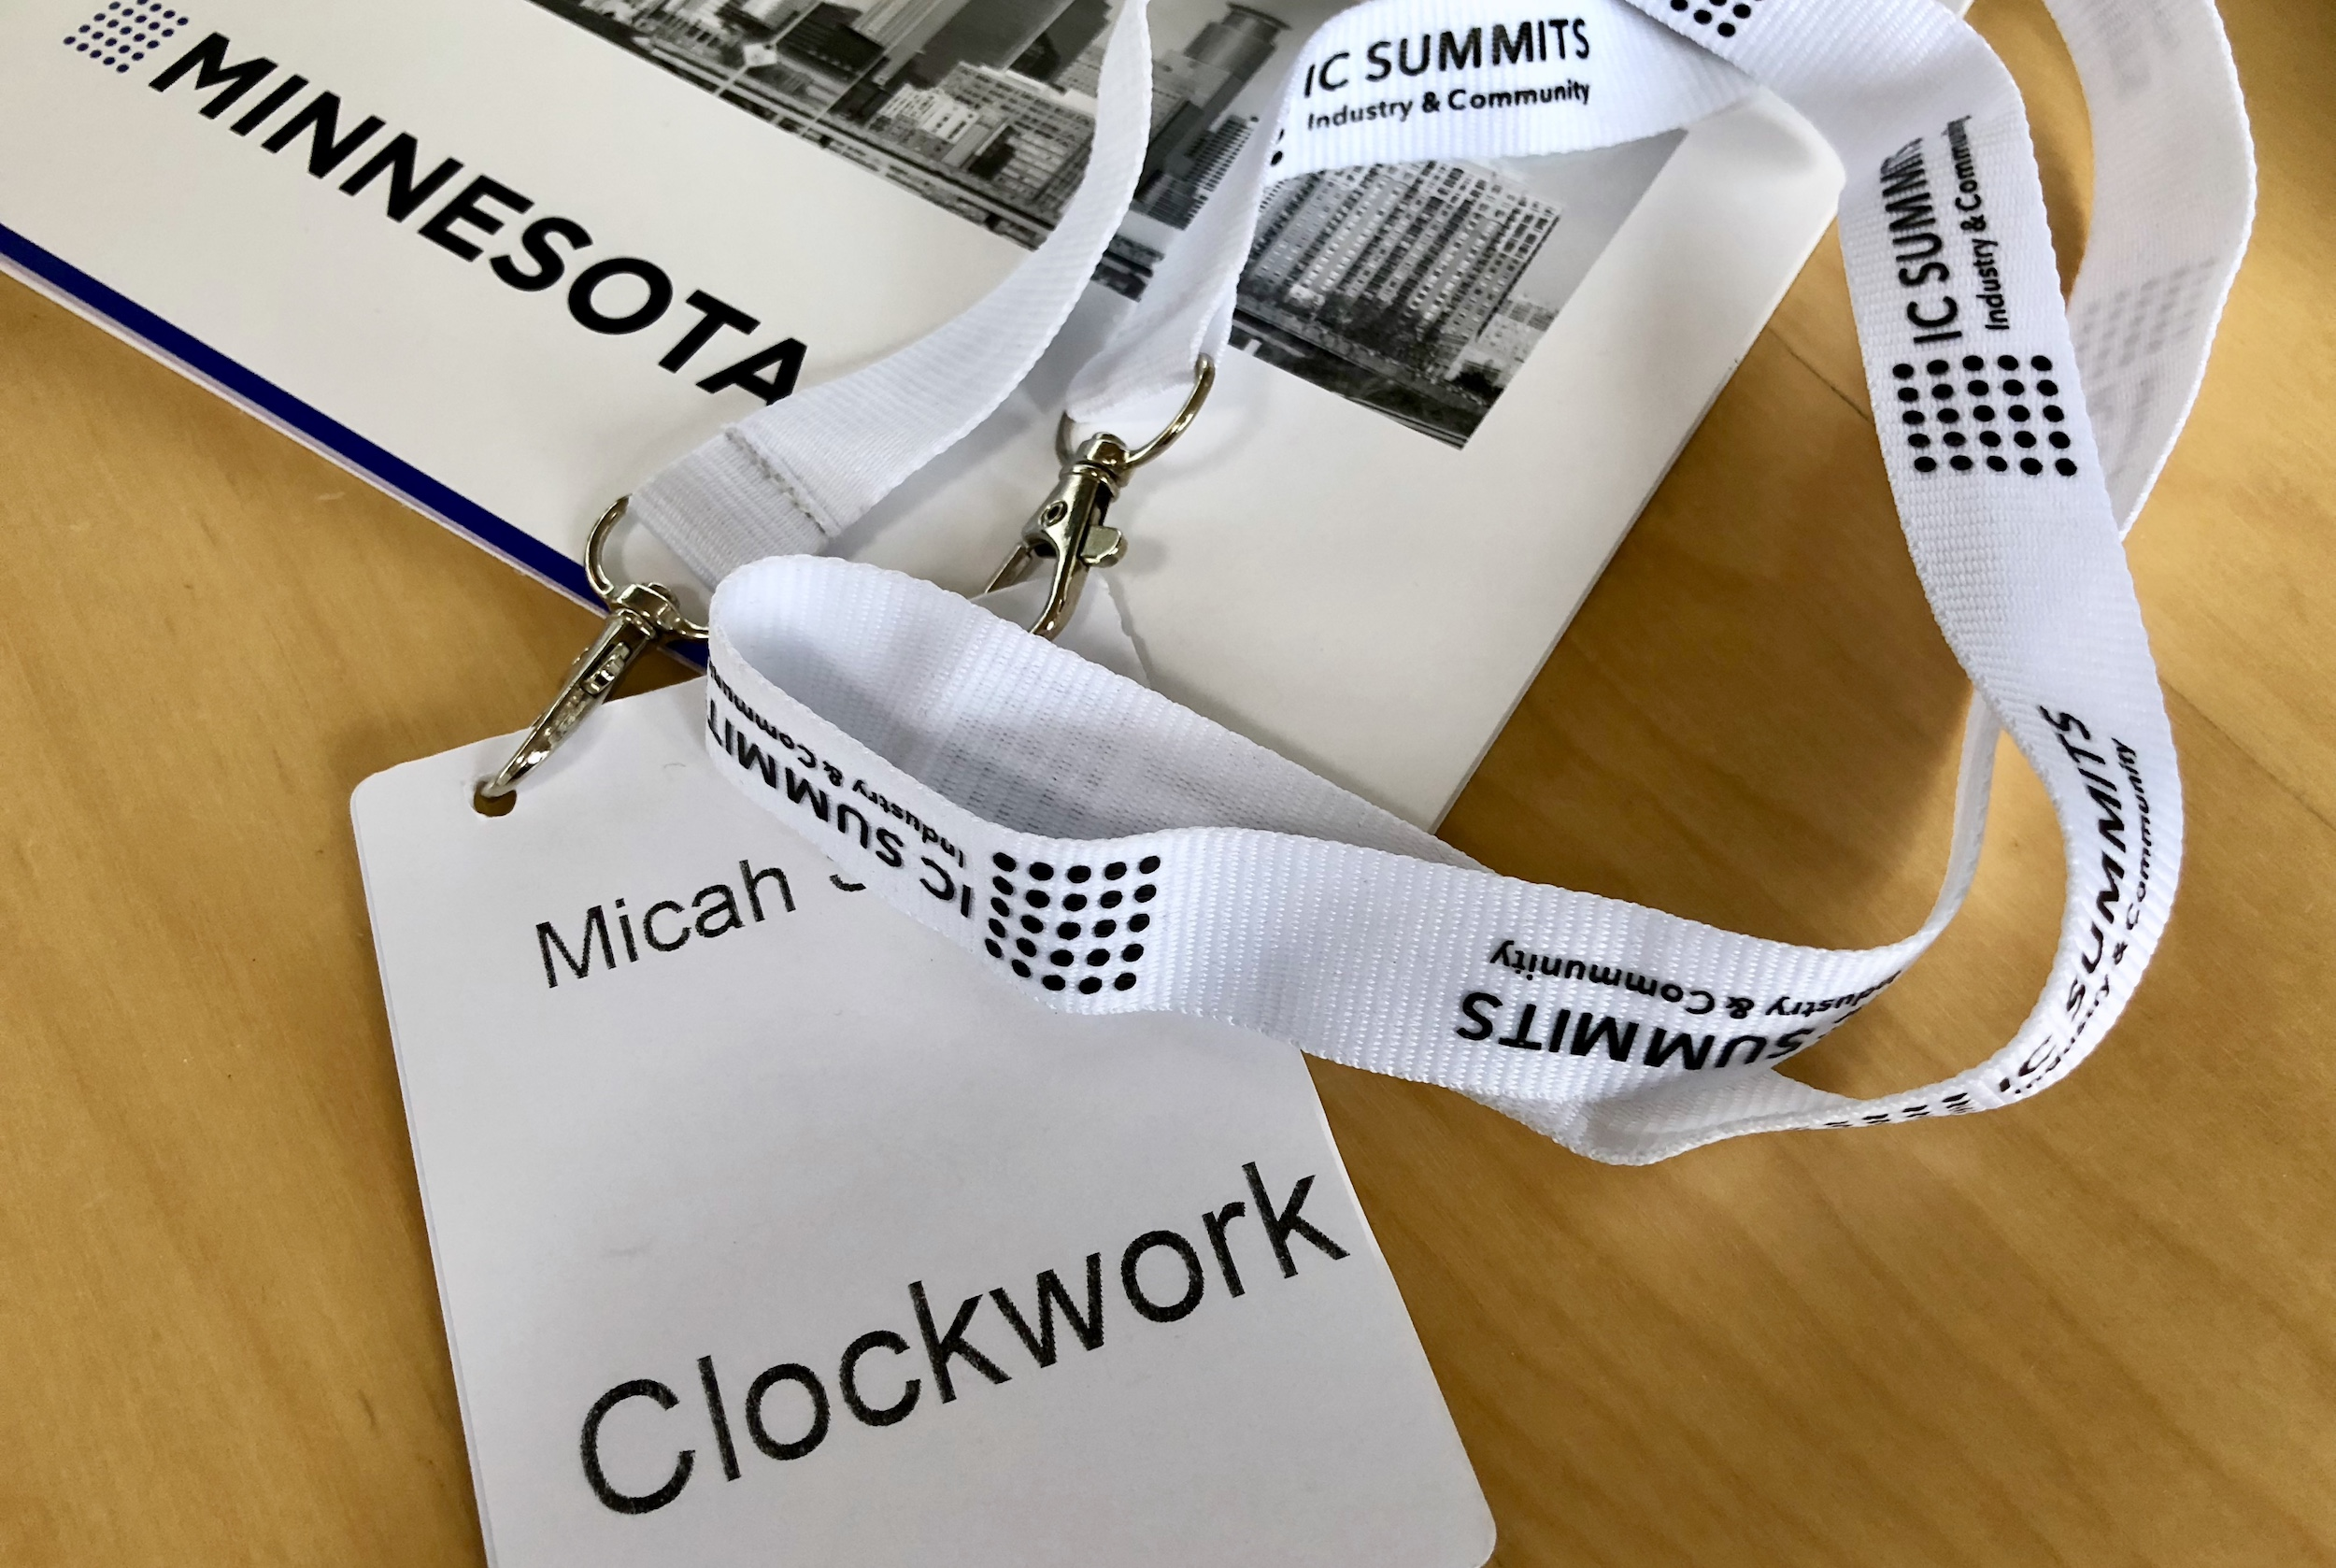 Our Director of Experience's name badge from Minnesota Marketing Summit